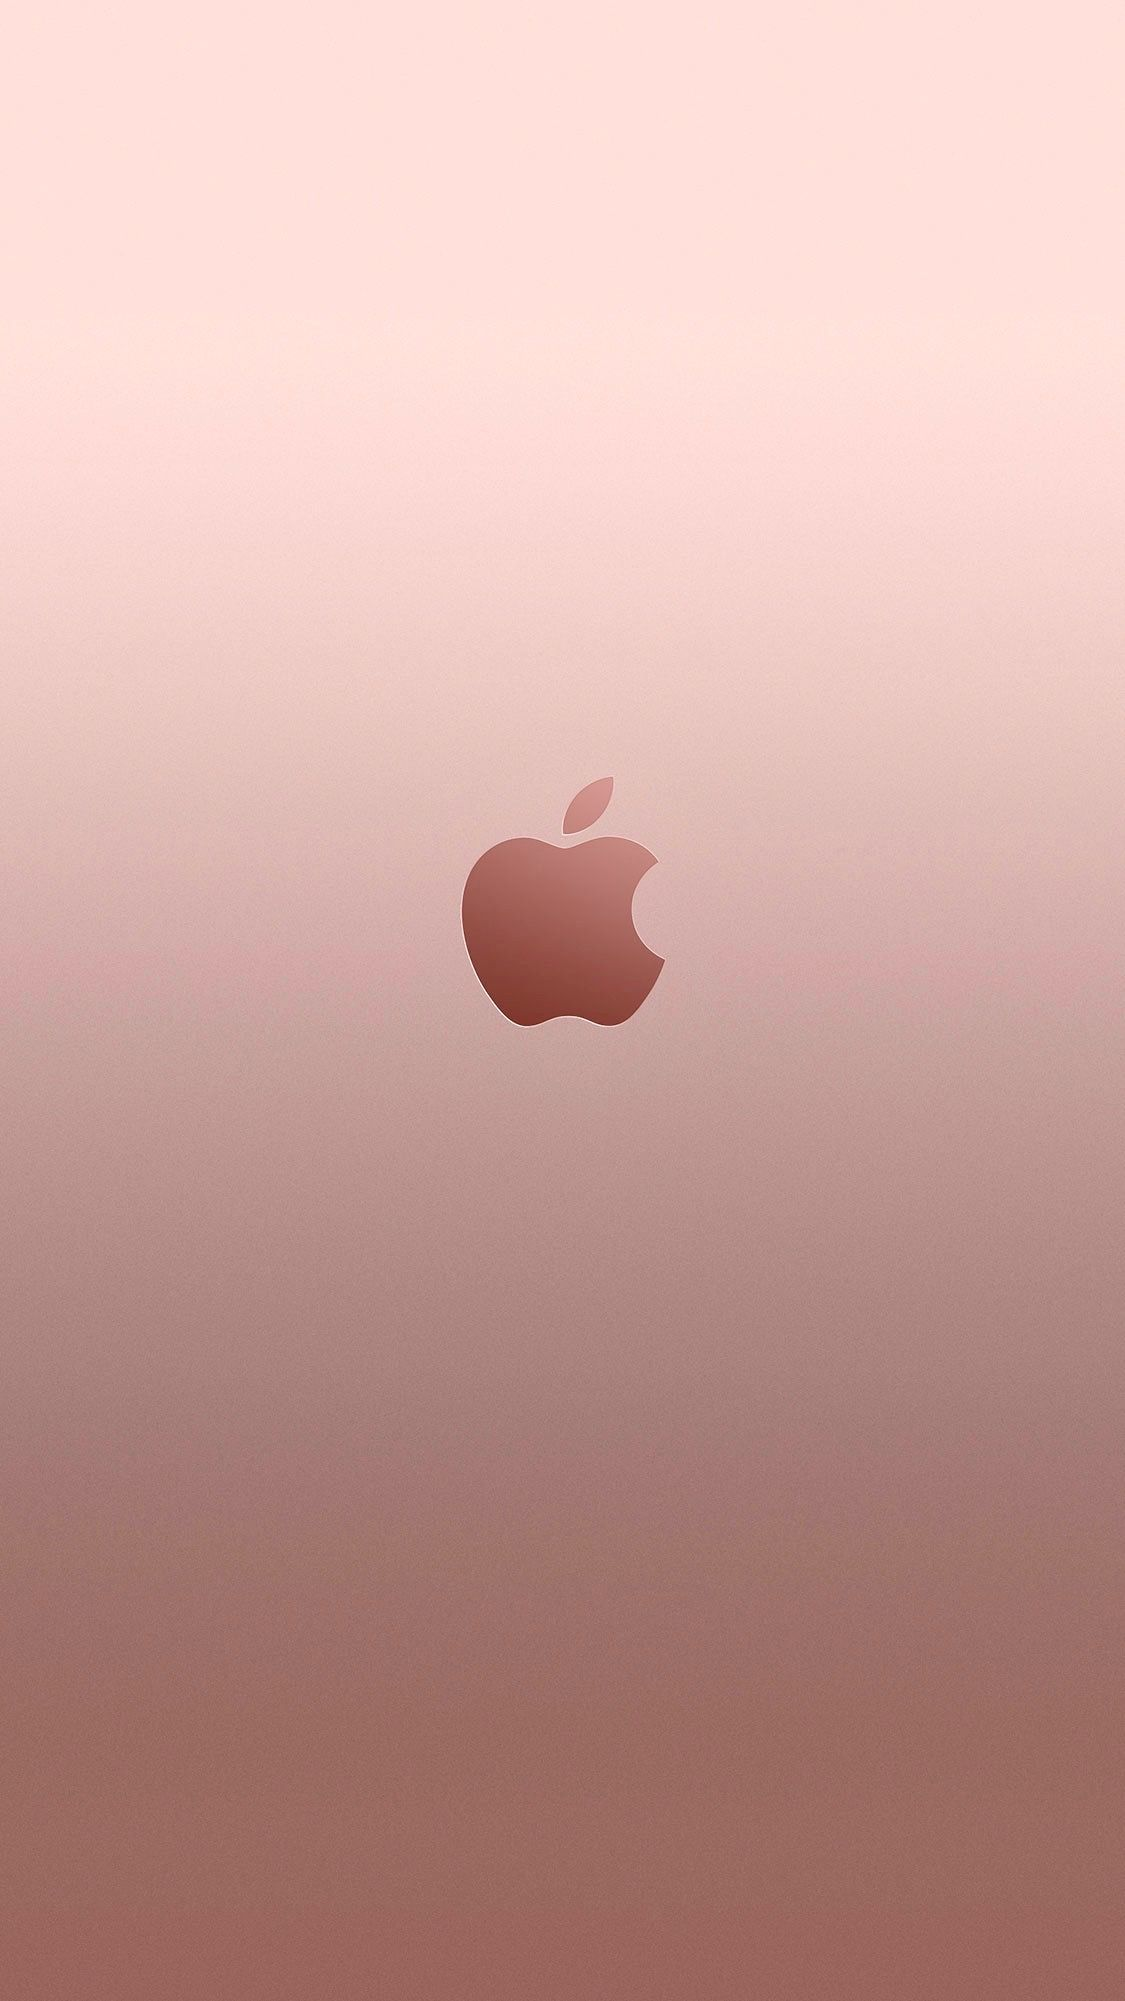 Iphone 7 Rose Gold Apple Wallpaper